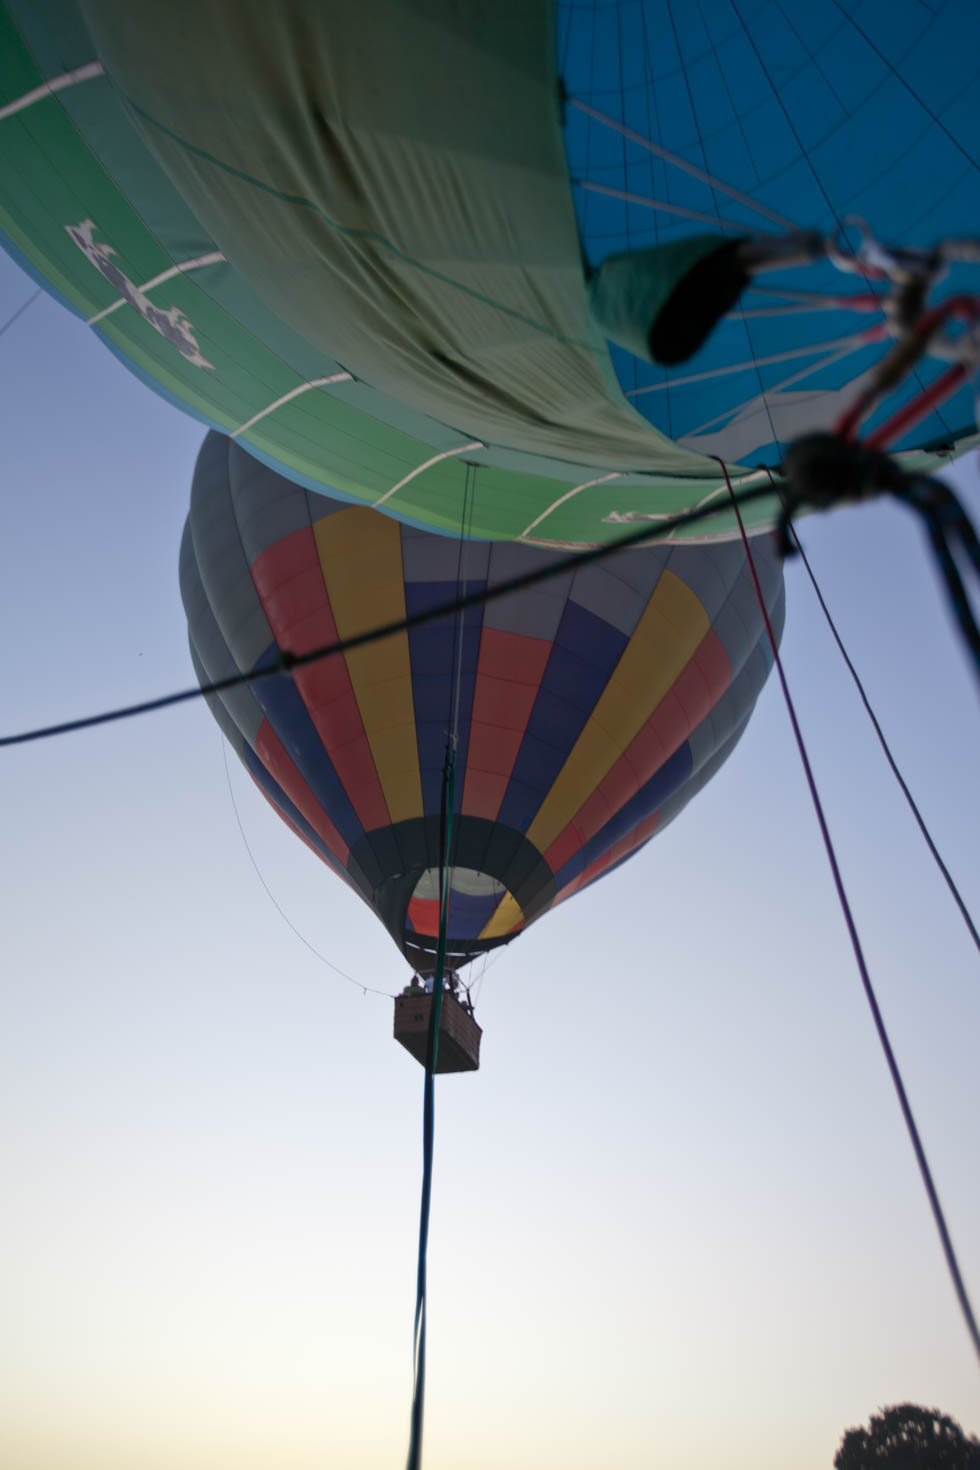 Hot Air Balloon Ride, Bird-in-Hand, PA #vezzaniphotography